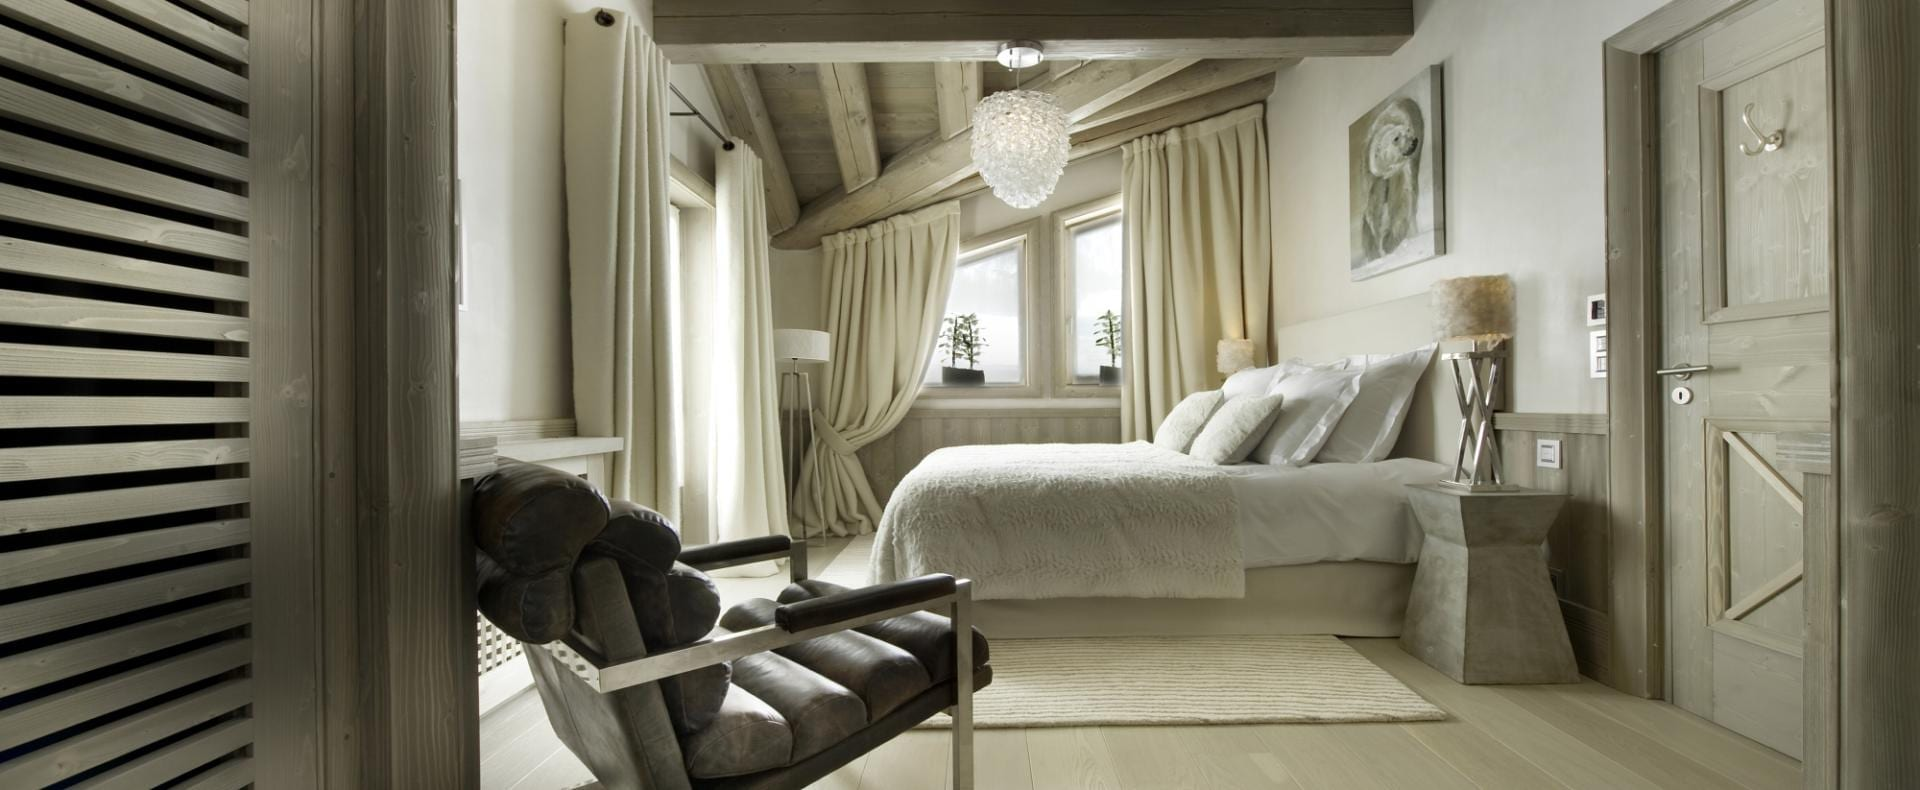 Bedroom-White-Pearl-Val-d'Isere-Ultimate-Luxury-Chalets-UltraVilla